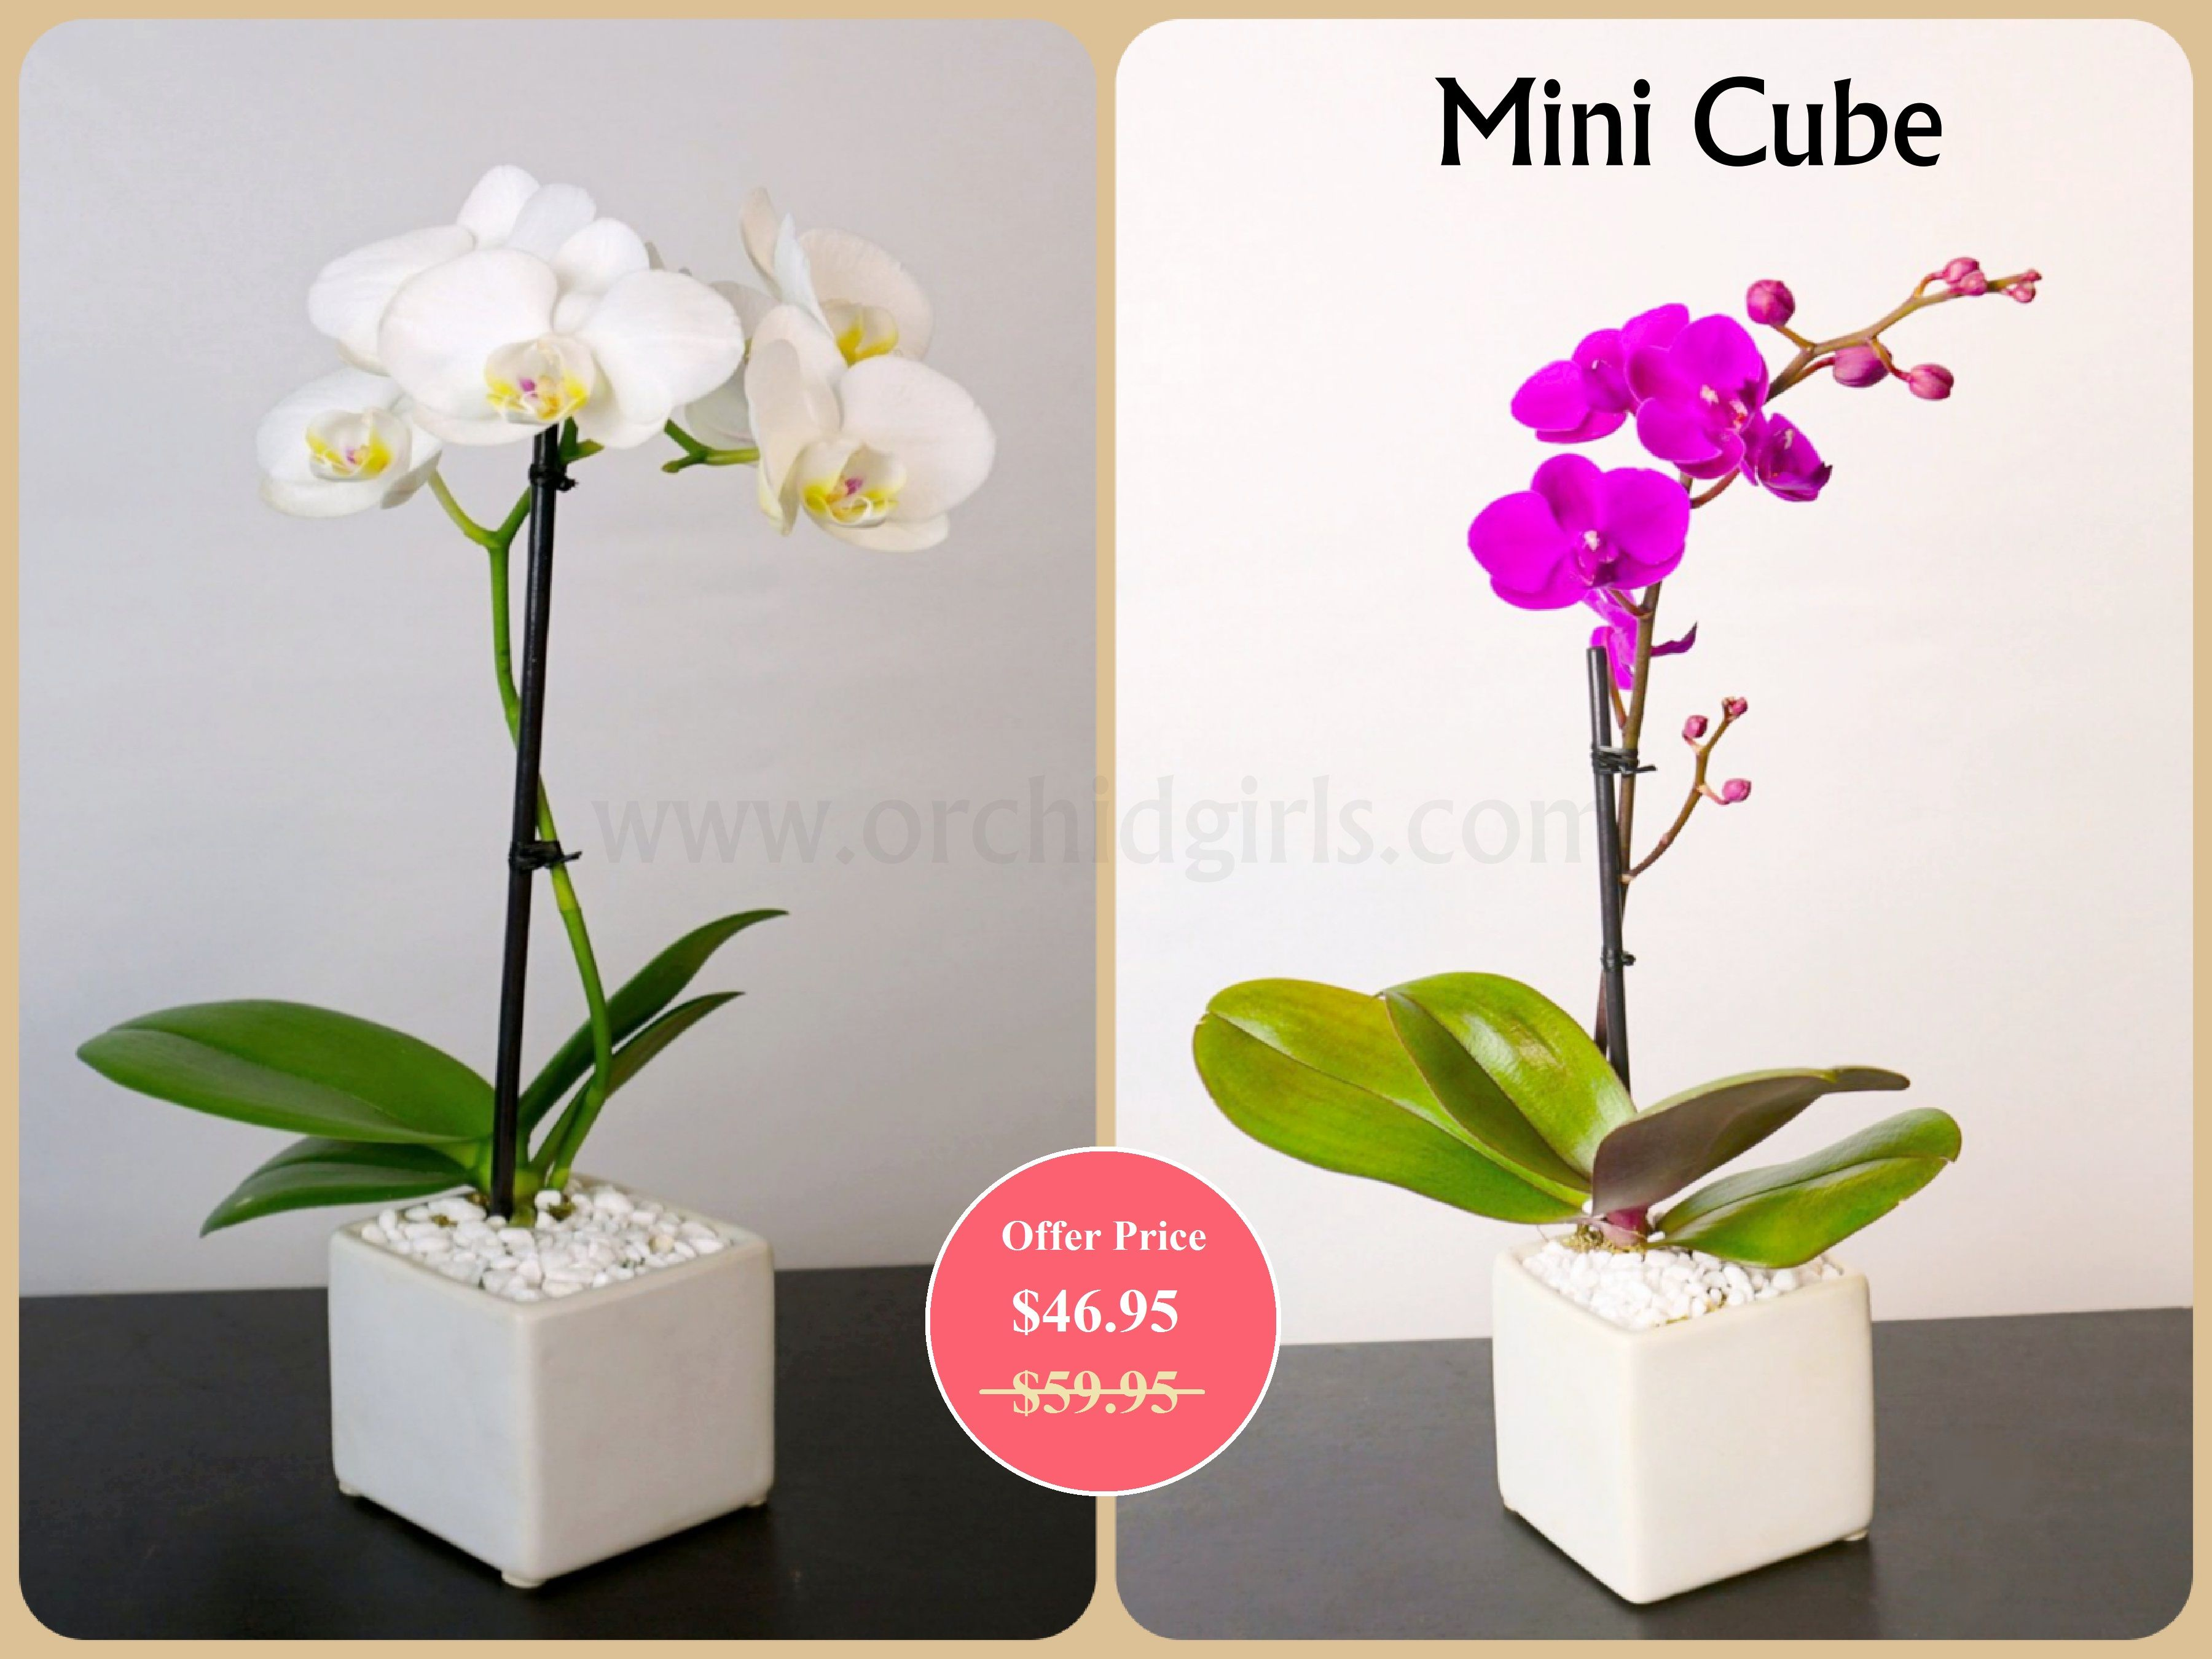 Mini Cube Buy Minicube With Offer Price Decorate Your Room By It Buy Now Www Orchidgirls Com Plants House Plants Indoor House Plants